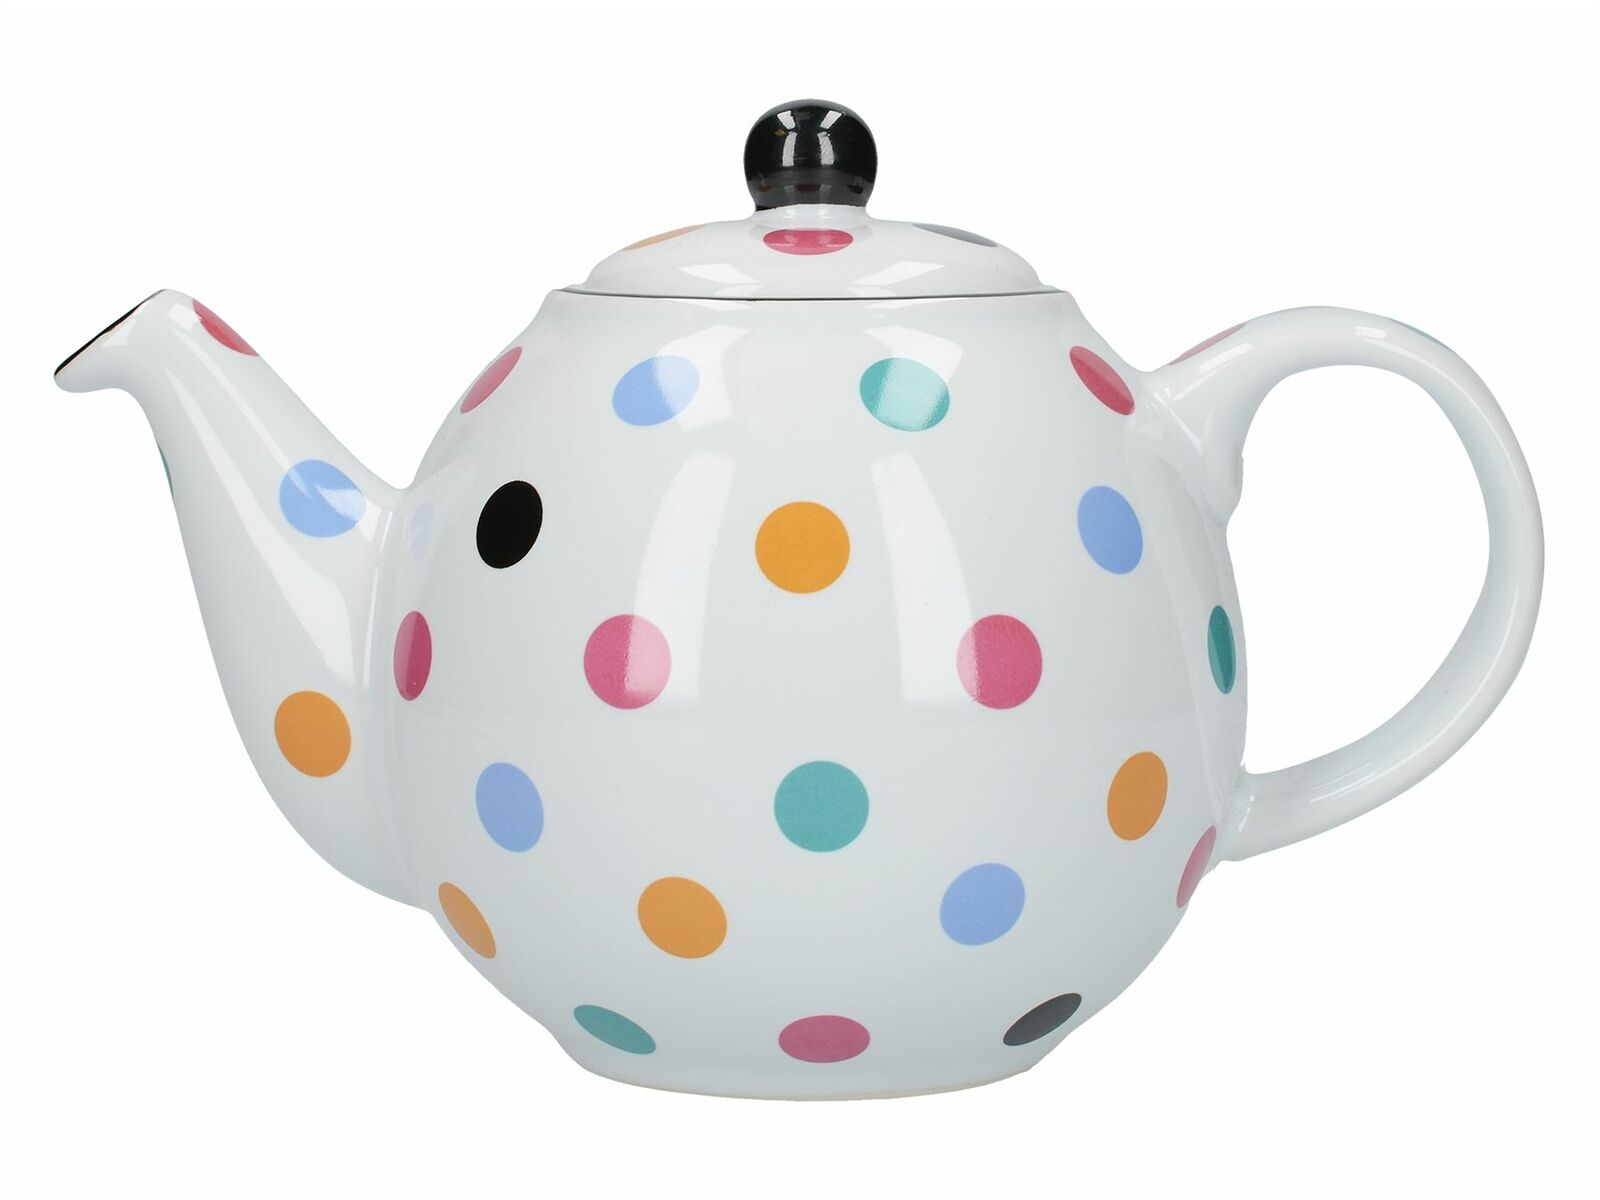 London Pottery Globe 6 Cup Teapot Weiß With Multi Spots